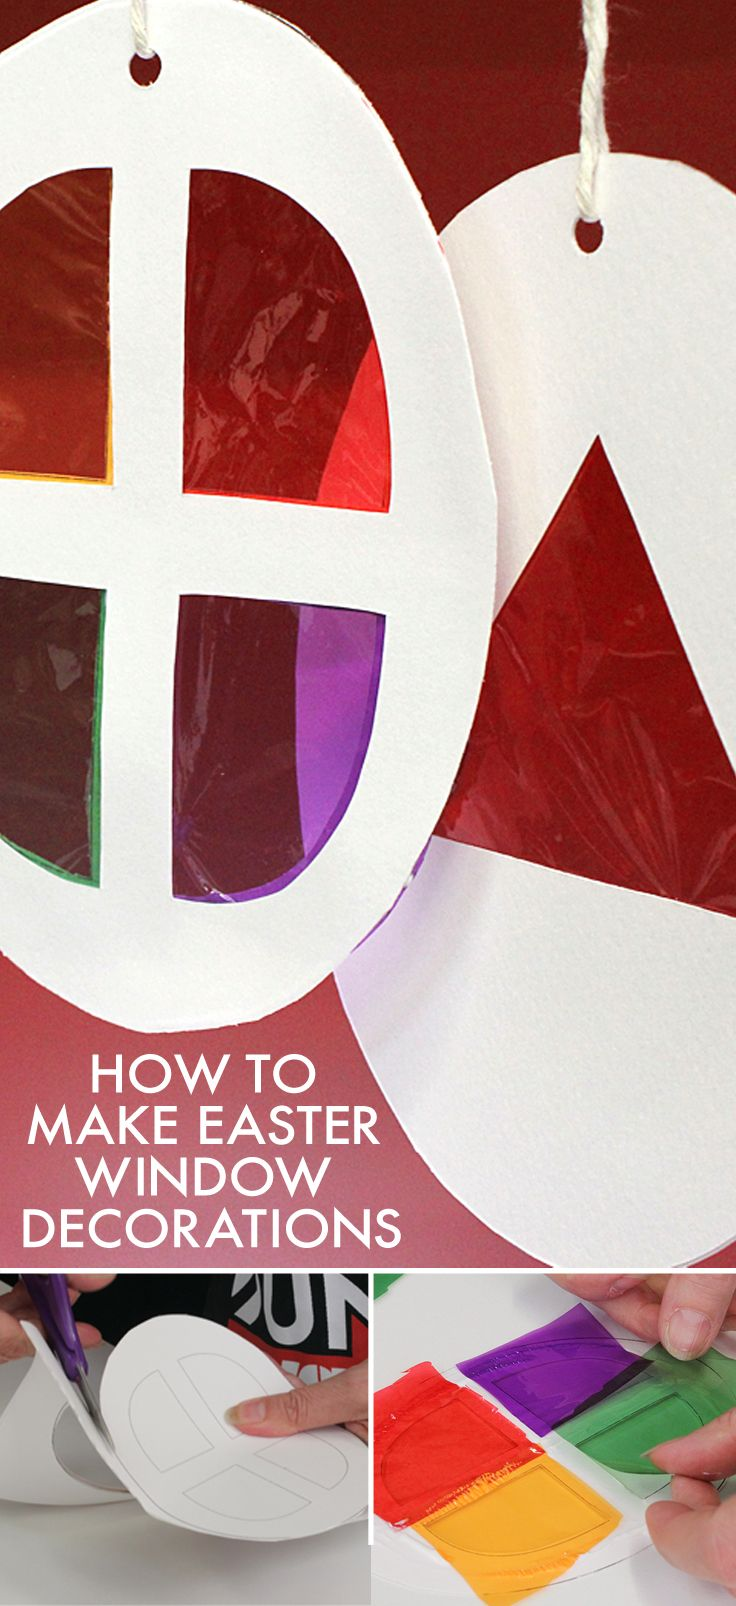 The kids will have loads of fun making these fun #Easter window decorations to hang in their bedroom windows.